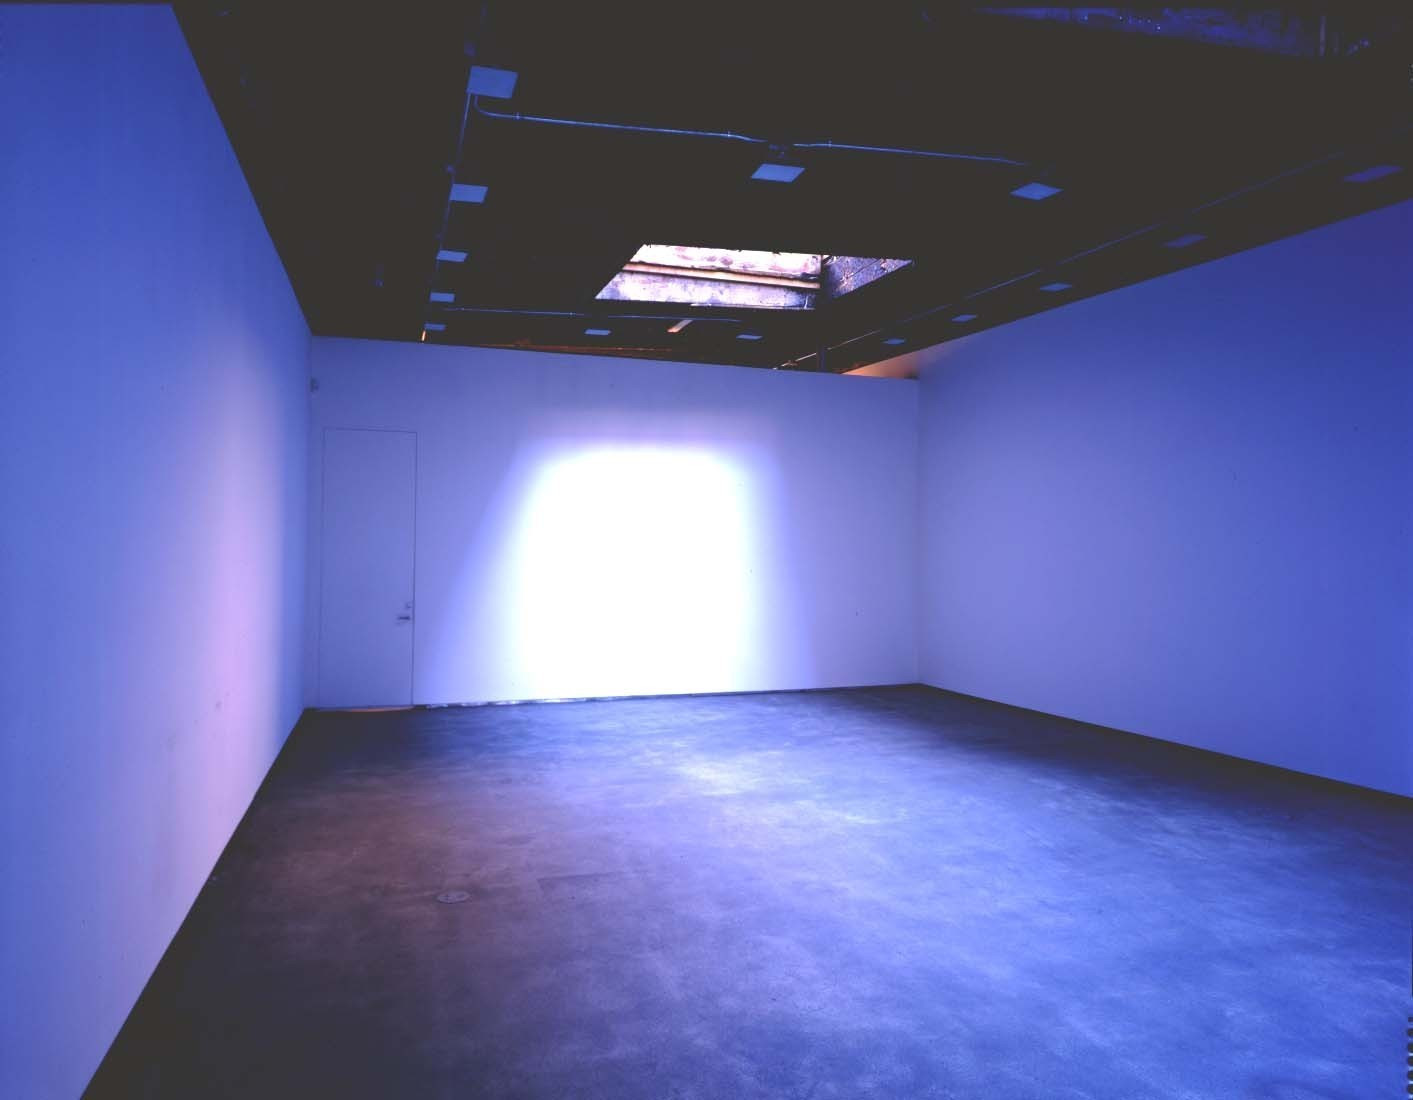 Martin Creed. Work No. 227, The Lights Going On And Off. 2000